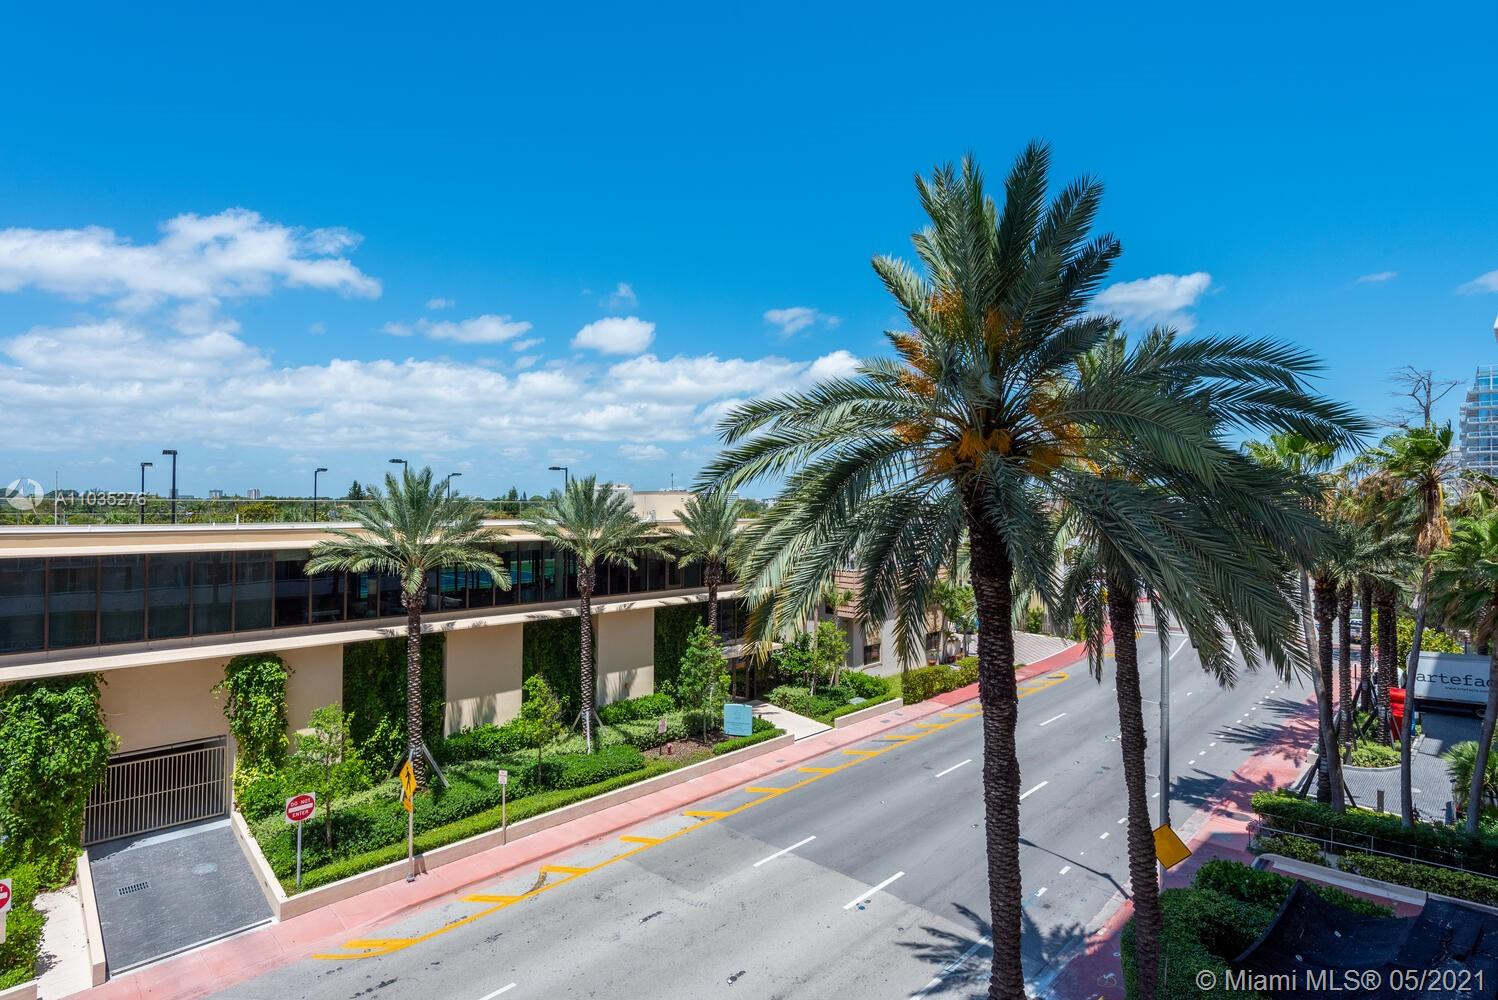 Photo of 8925 Collins Ave #4F, Surfside, Florida, 33154 - View.